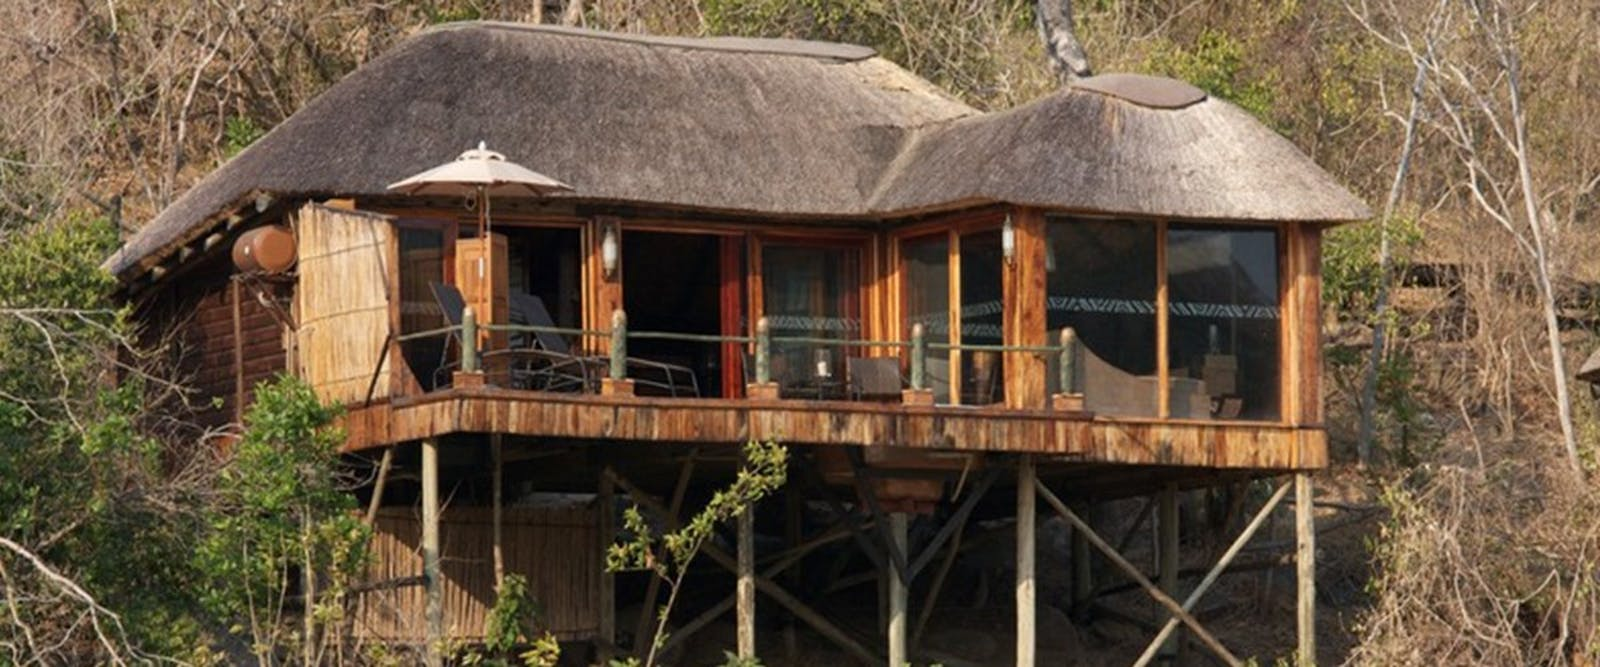 Exterior of chalets at Serena Mivumo River Lodge